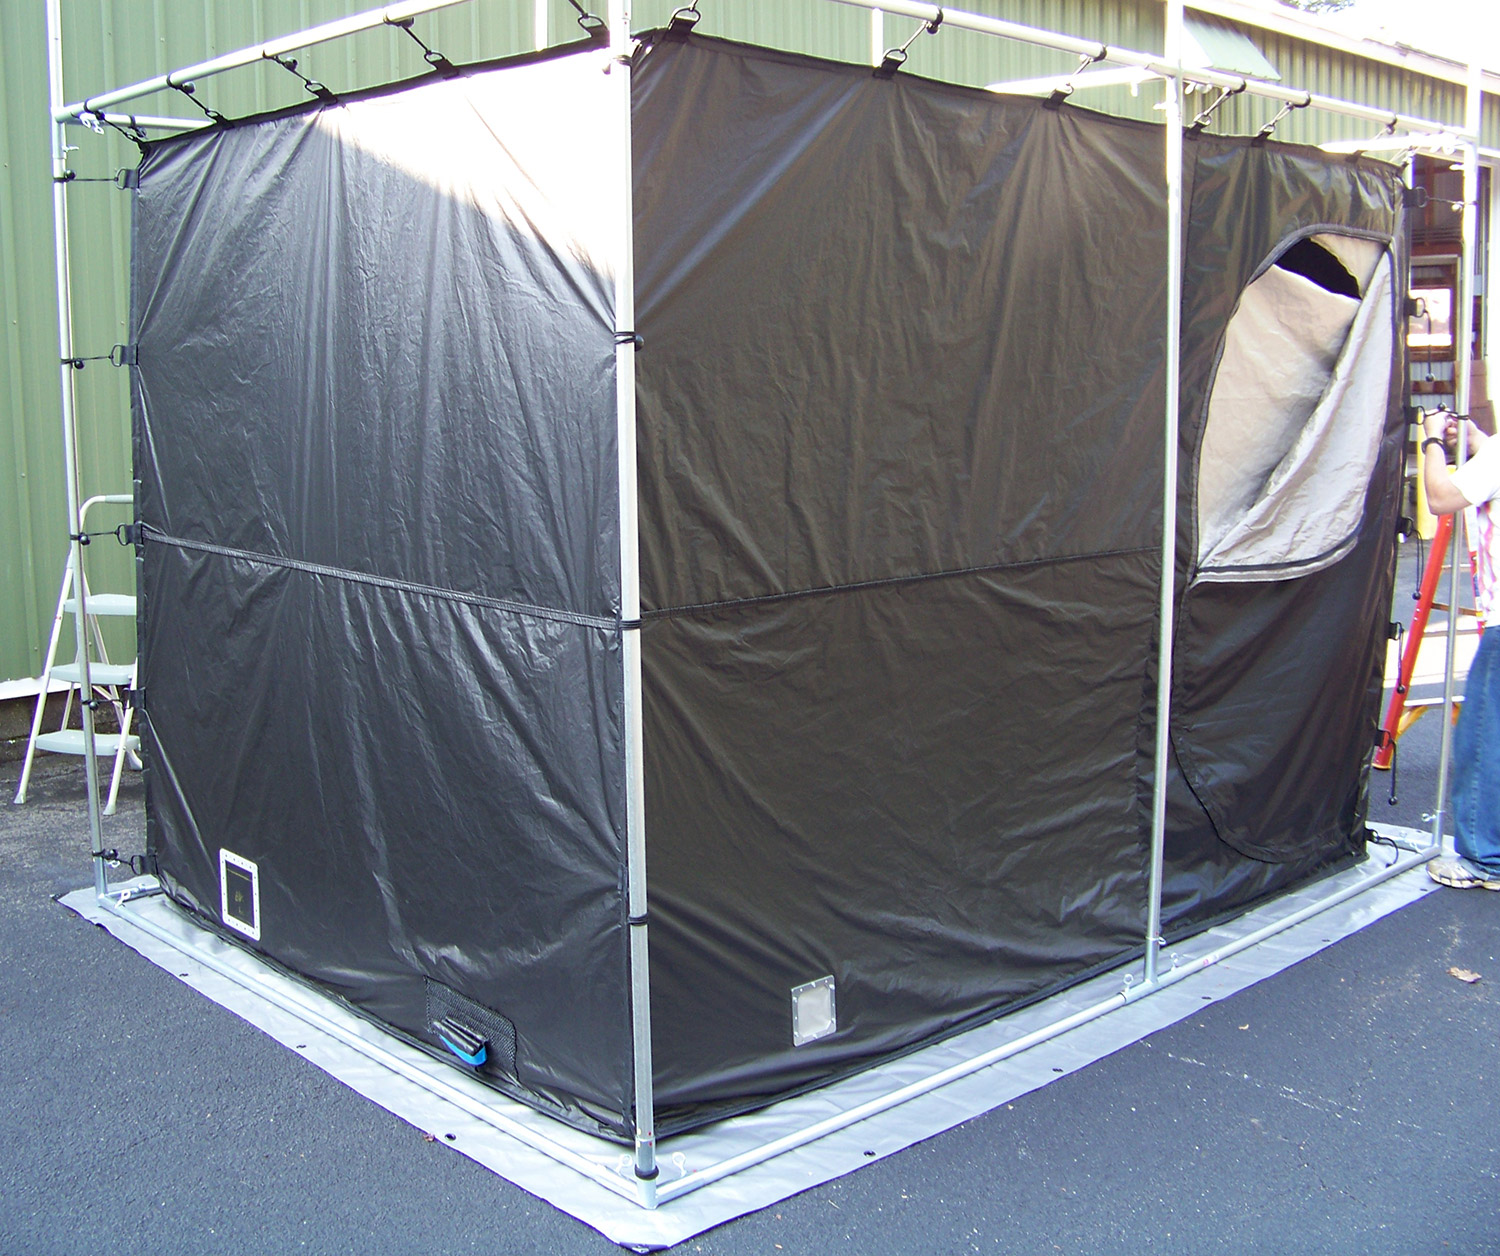 V Technical Textiles 8447 RF Shielded Enclosure 4' x 4' x 7' 30 MHz - 10 GHz